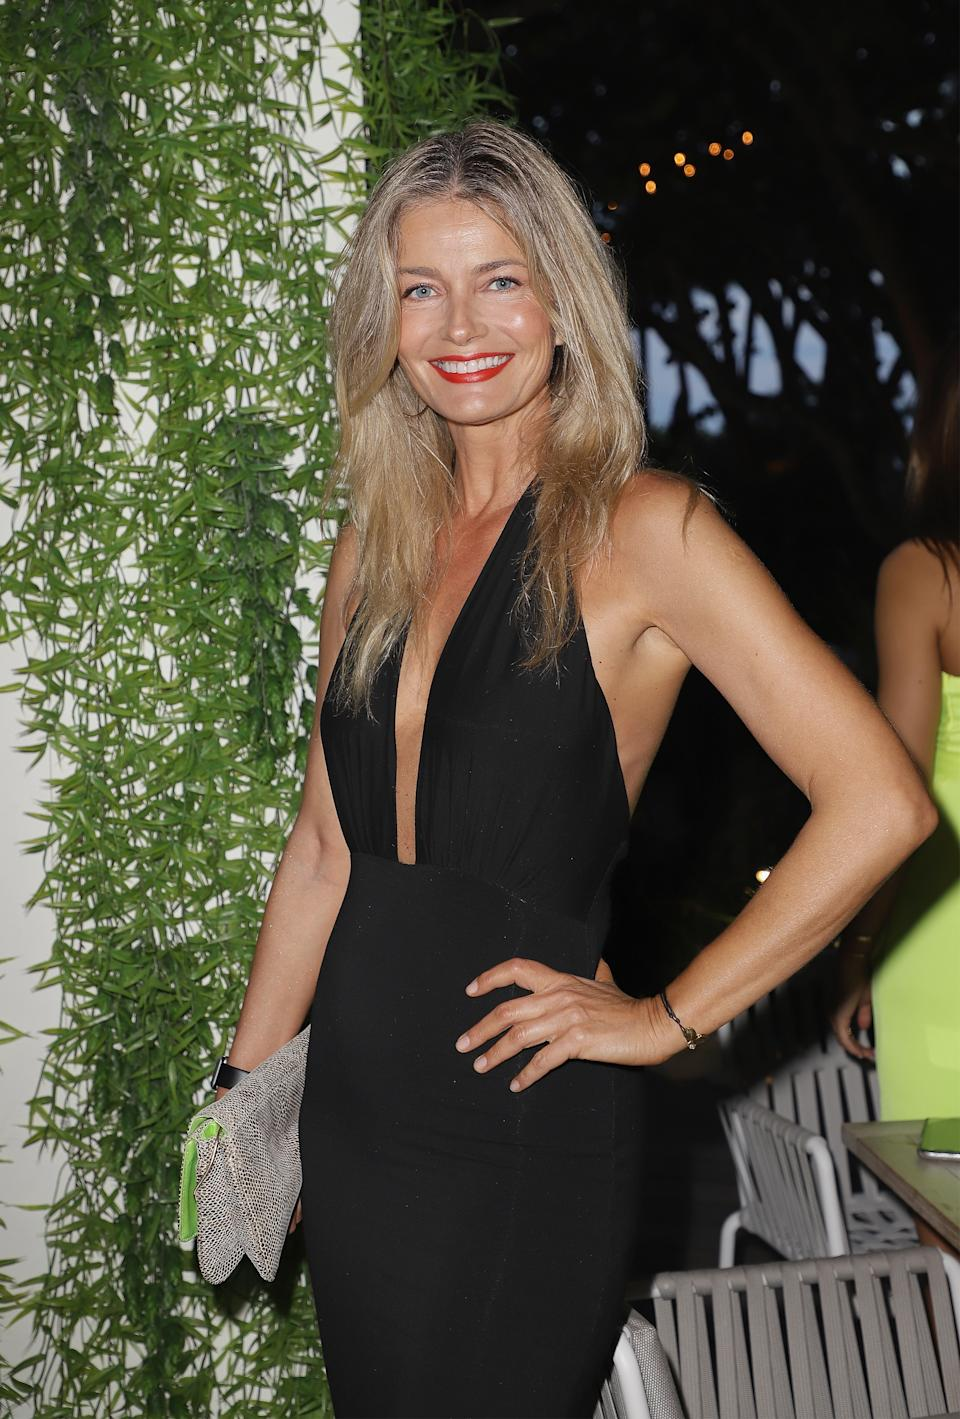 Paulina Porizkova opened up about her mental health struggles as she starts over in a new home. (Photo: John Parra/Getty Images for Sports Illustrated)